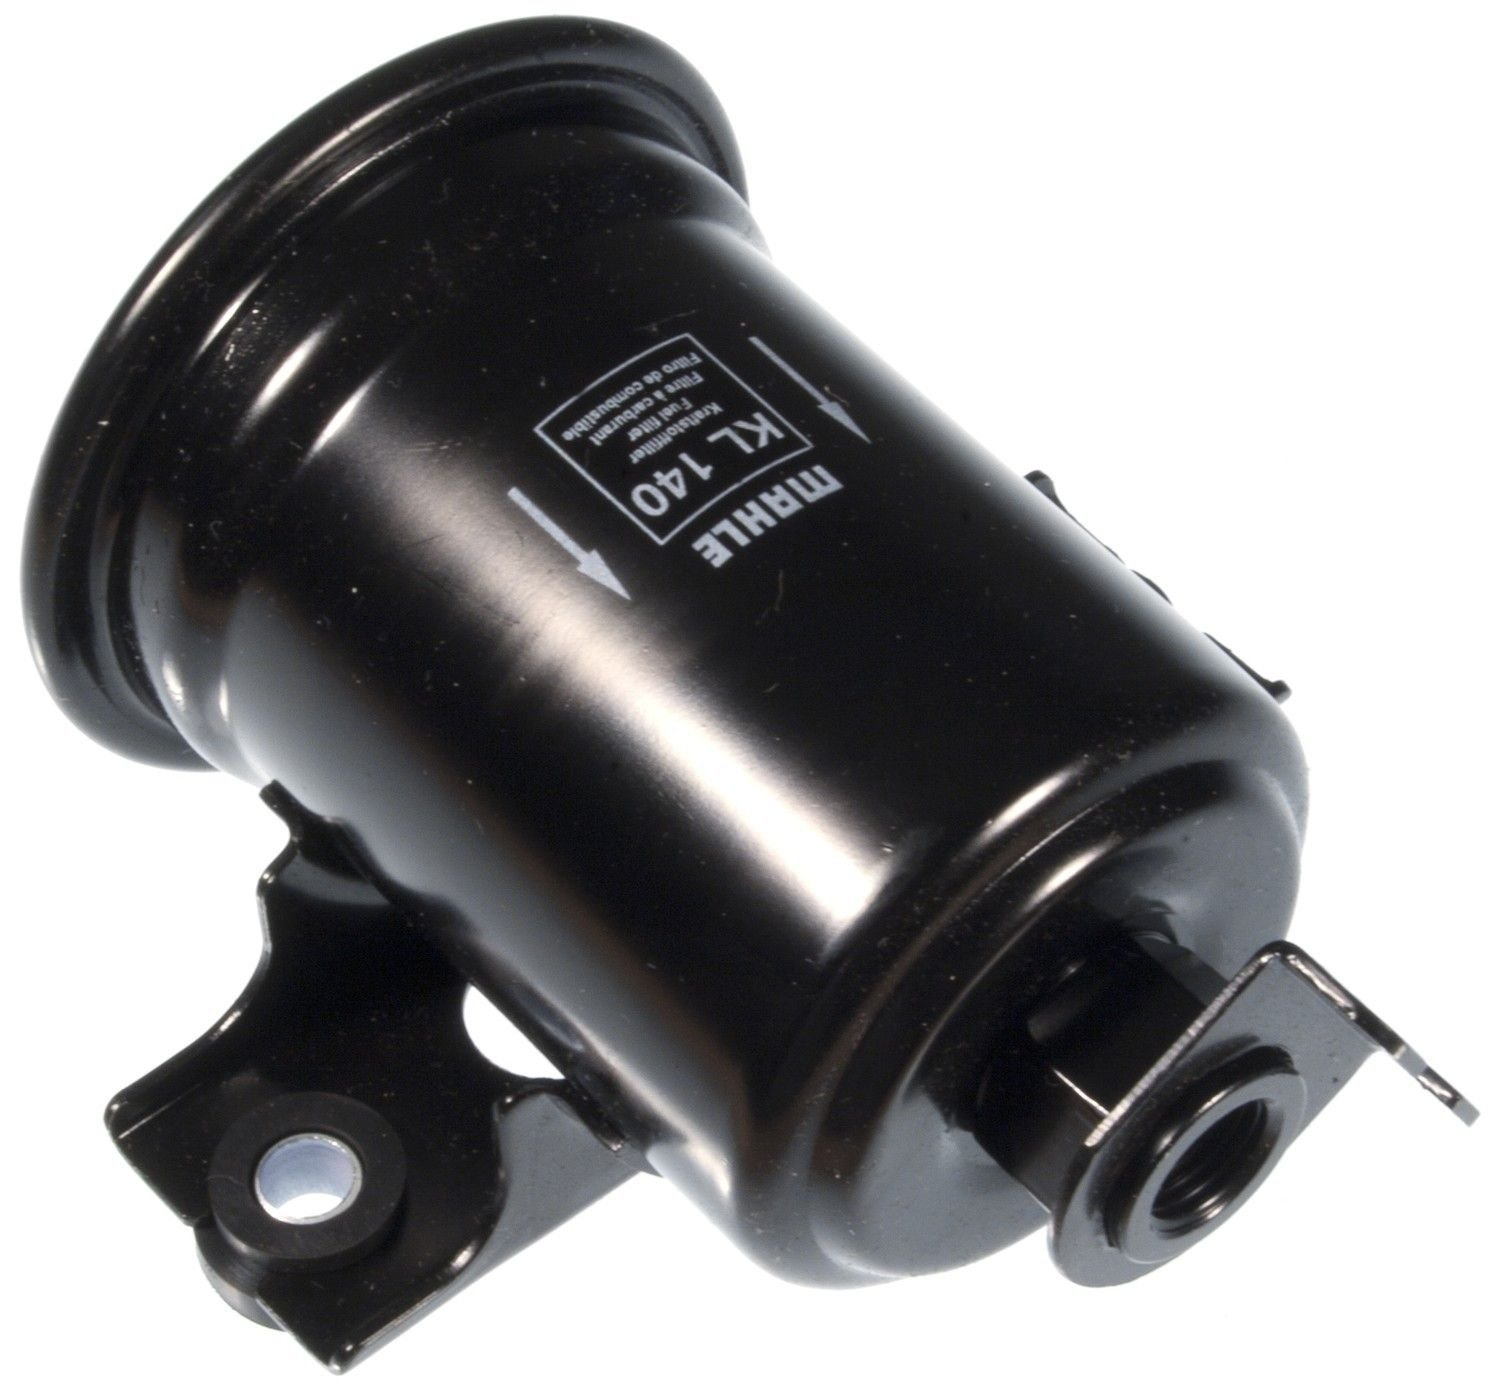 Toyota Corolla Fuel Filter Replacement Beck Arnley Fram Genuine 2000 Location 1993 In Line 4 Cyl 16l Mahle Kl 140 Type